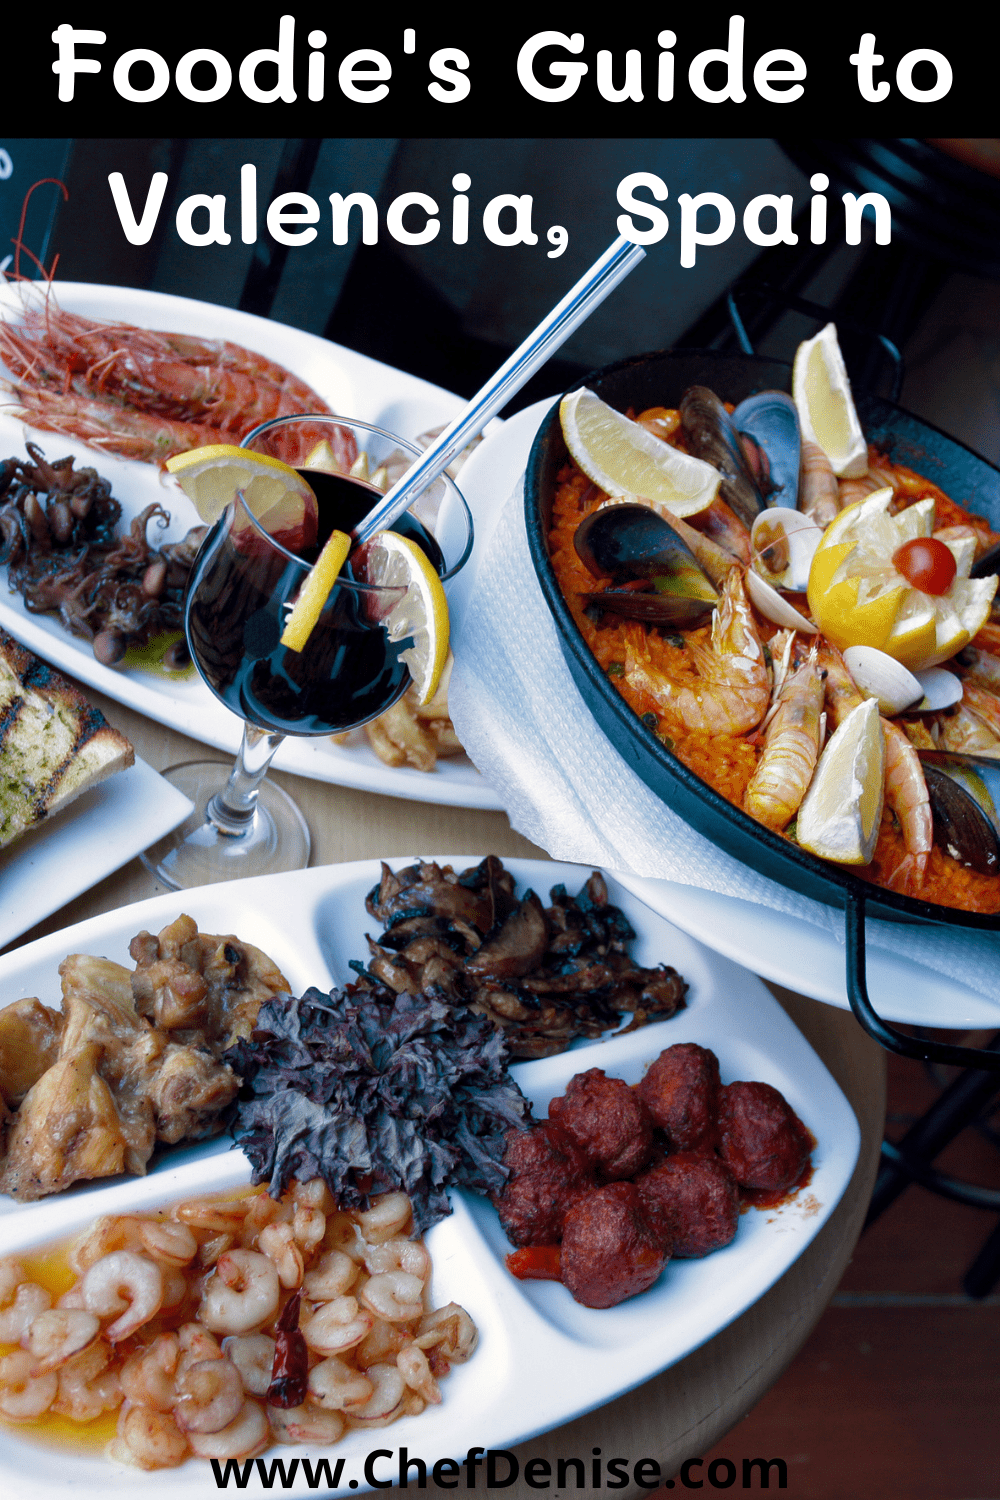 Pin for Guide to Valencian Food